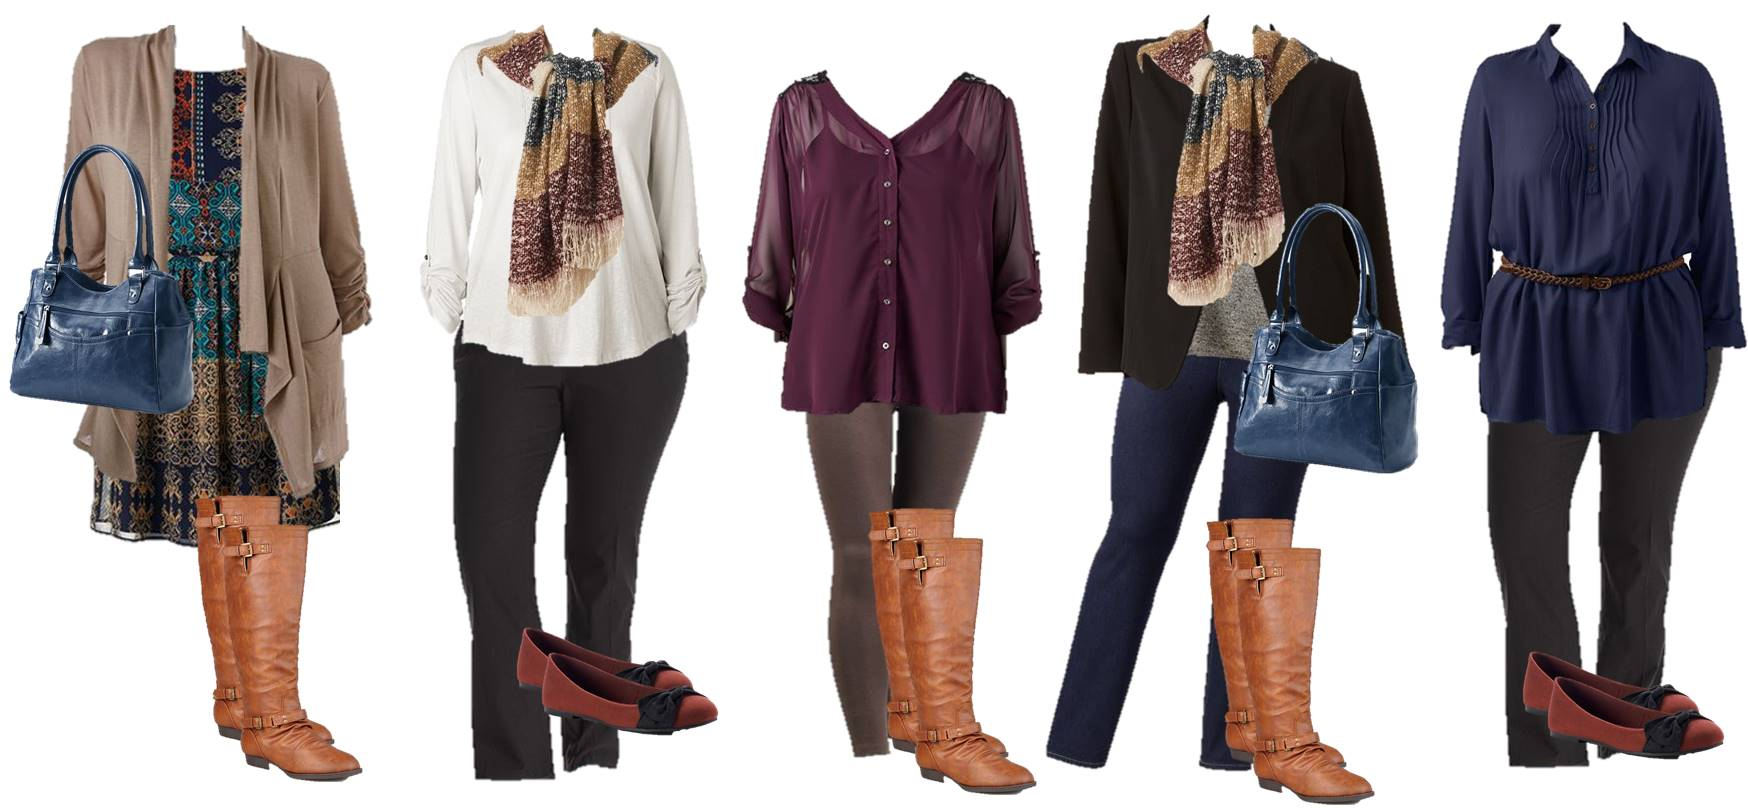 Spring Plus Size Fashion Finds